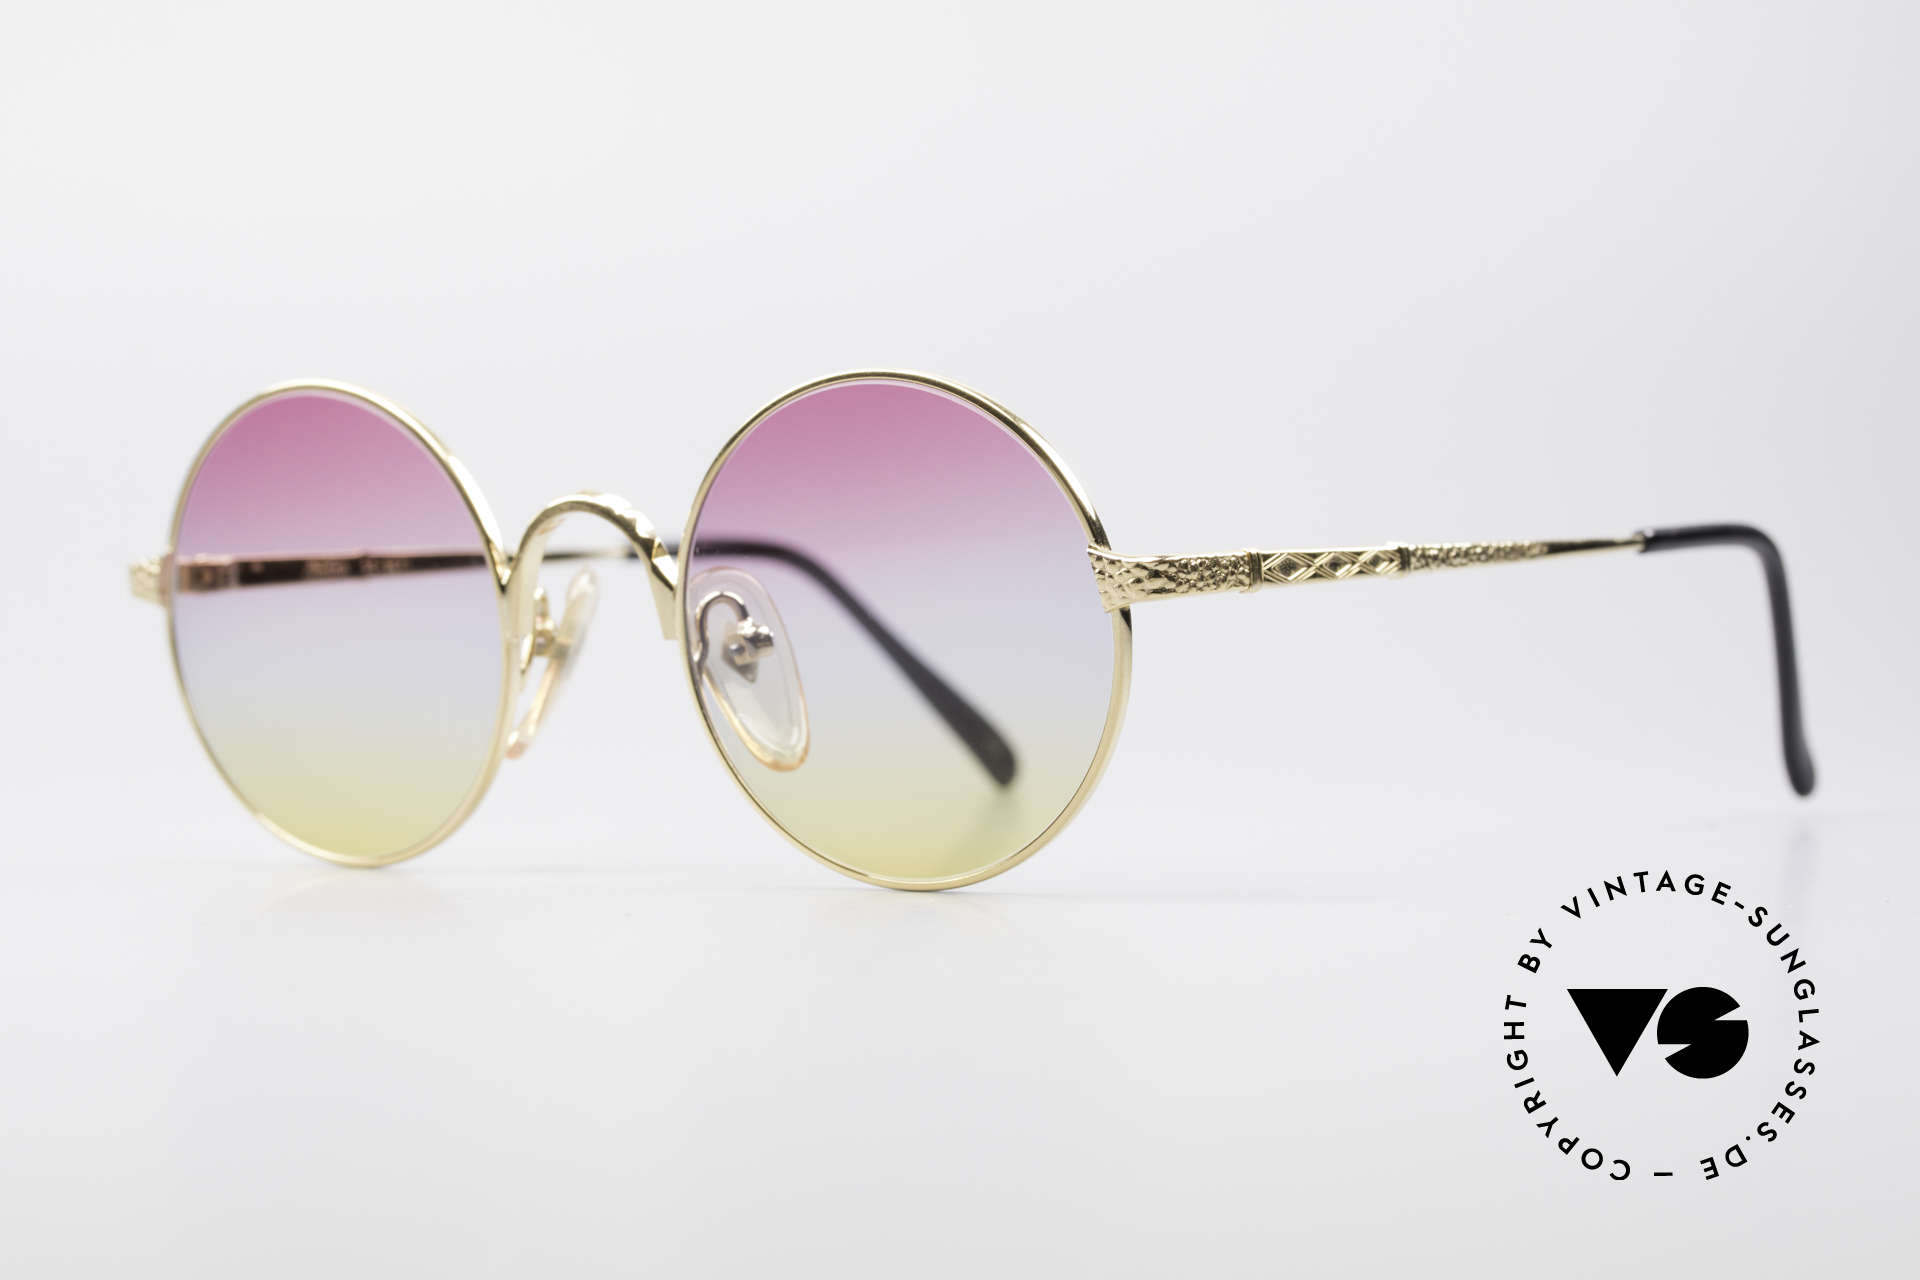 Jean Paul Gaultier 55-9671 Gold Plated Round Frame, 22kt GOLD-PLATED and tricolored sun lenses, Made for Men and Women